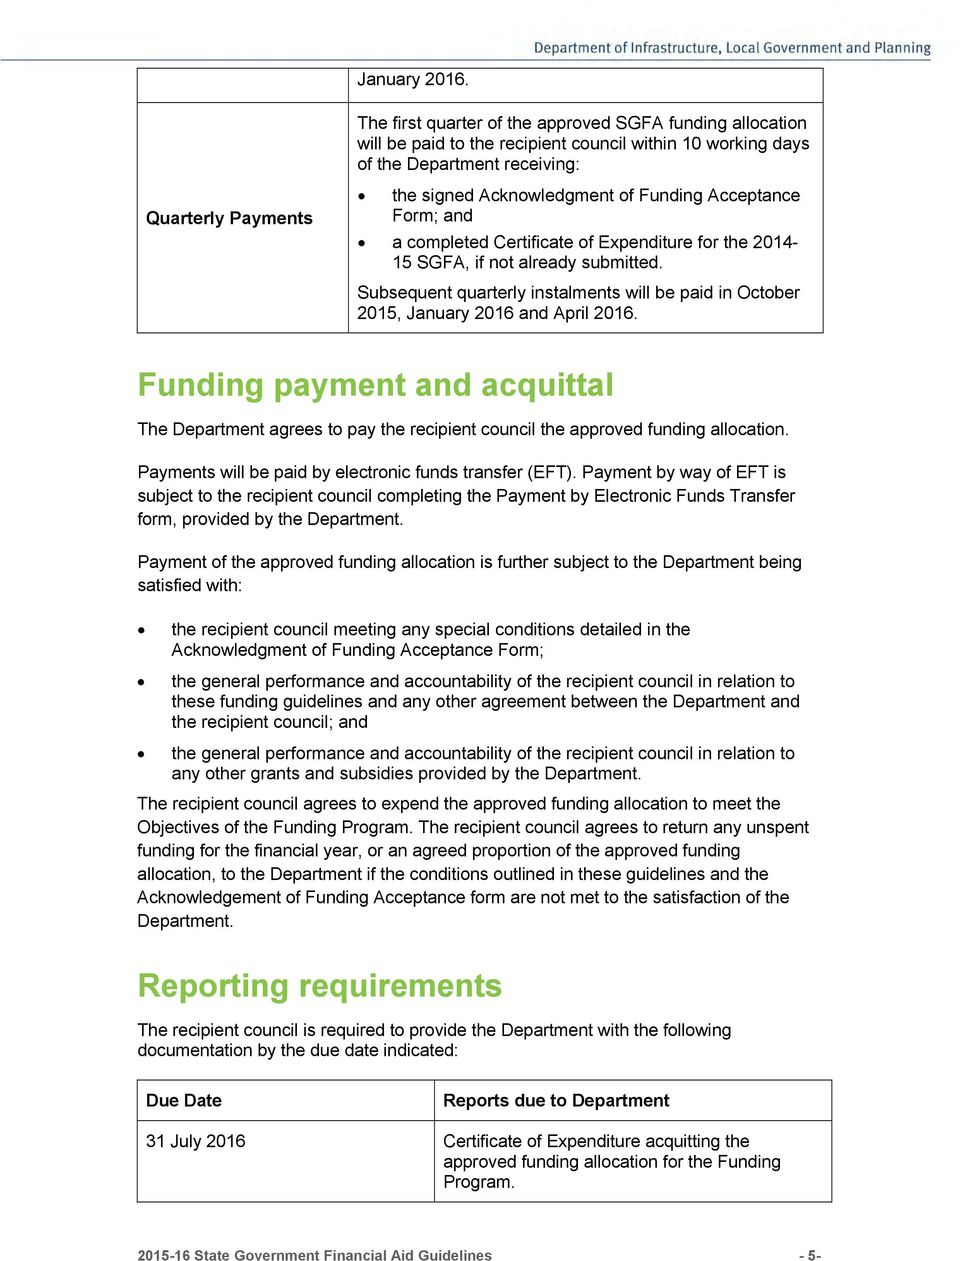 Funding Acceptance Form; and a completed Certificate of Expenditure for the 2014-15 SGFA, if not already submitted.